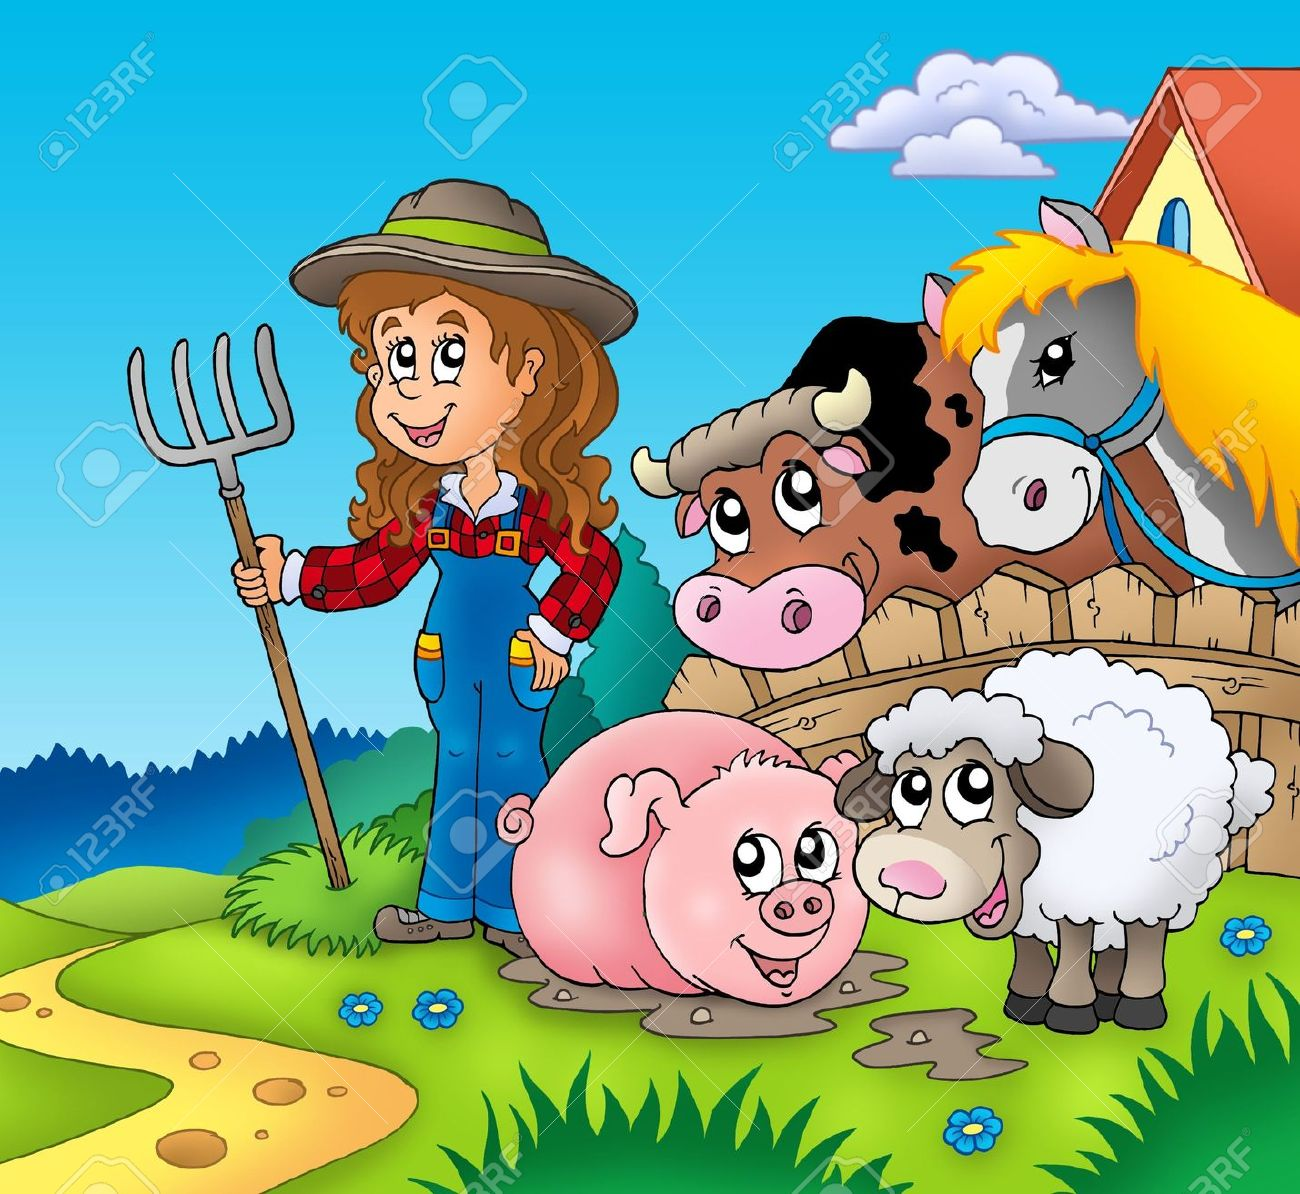 Country girl with farm animals - color illustration. Stock Illustration - 7630240